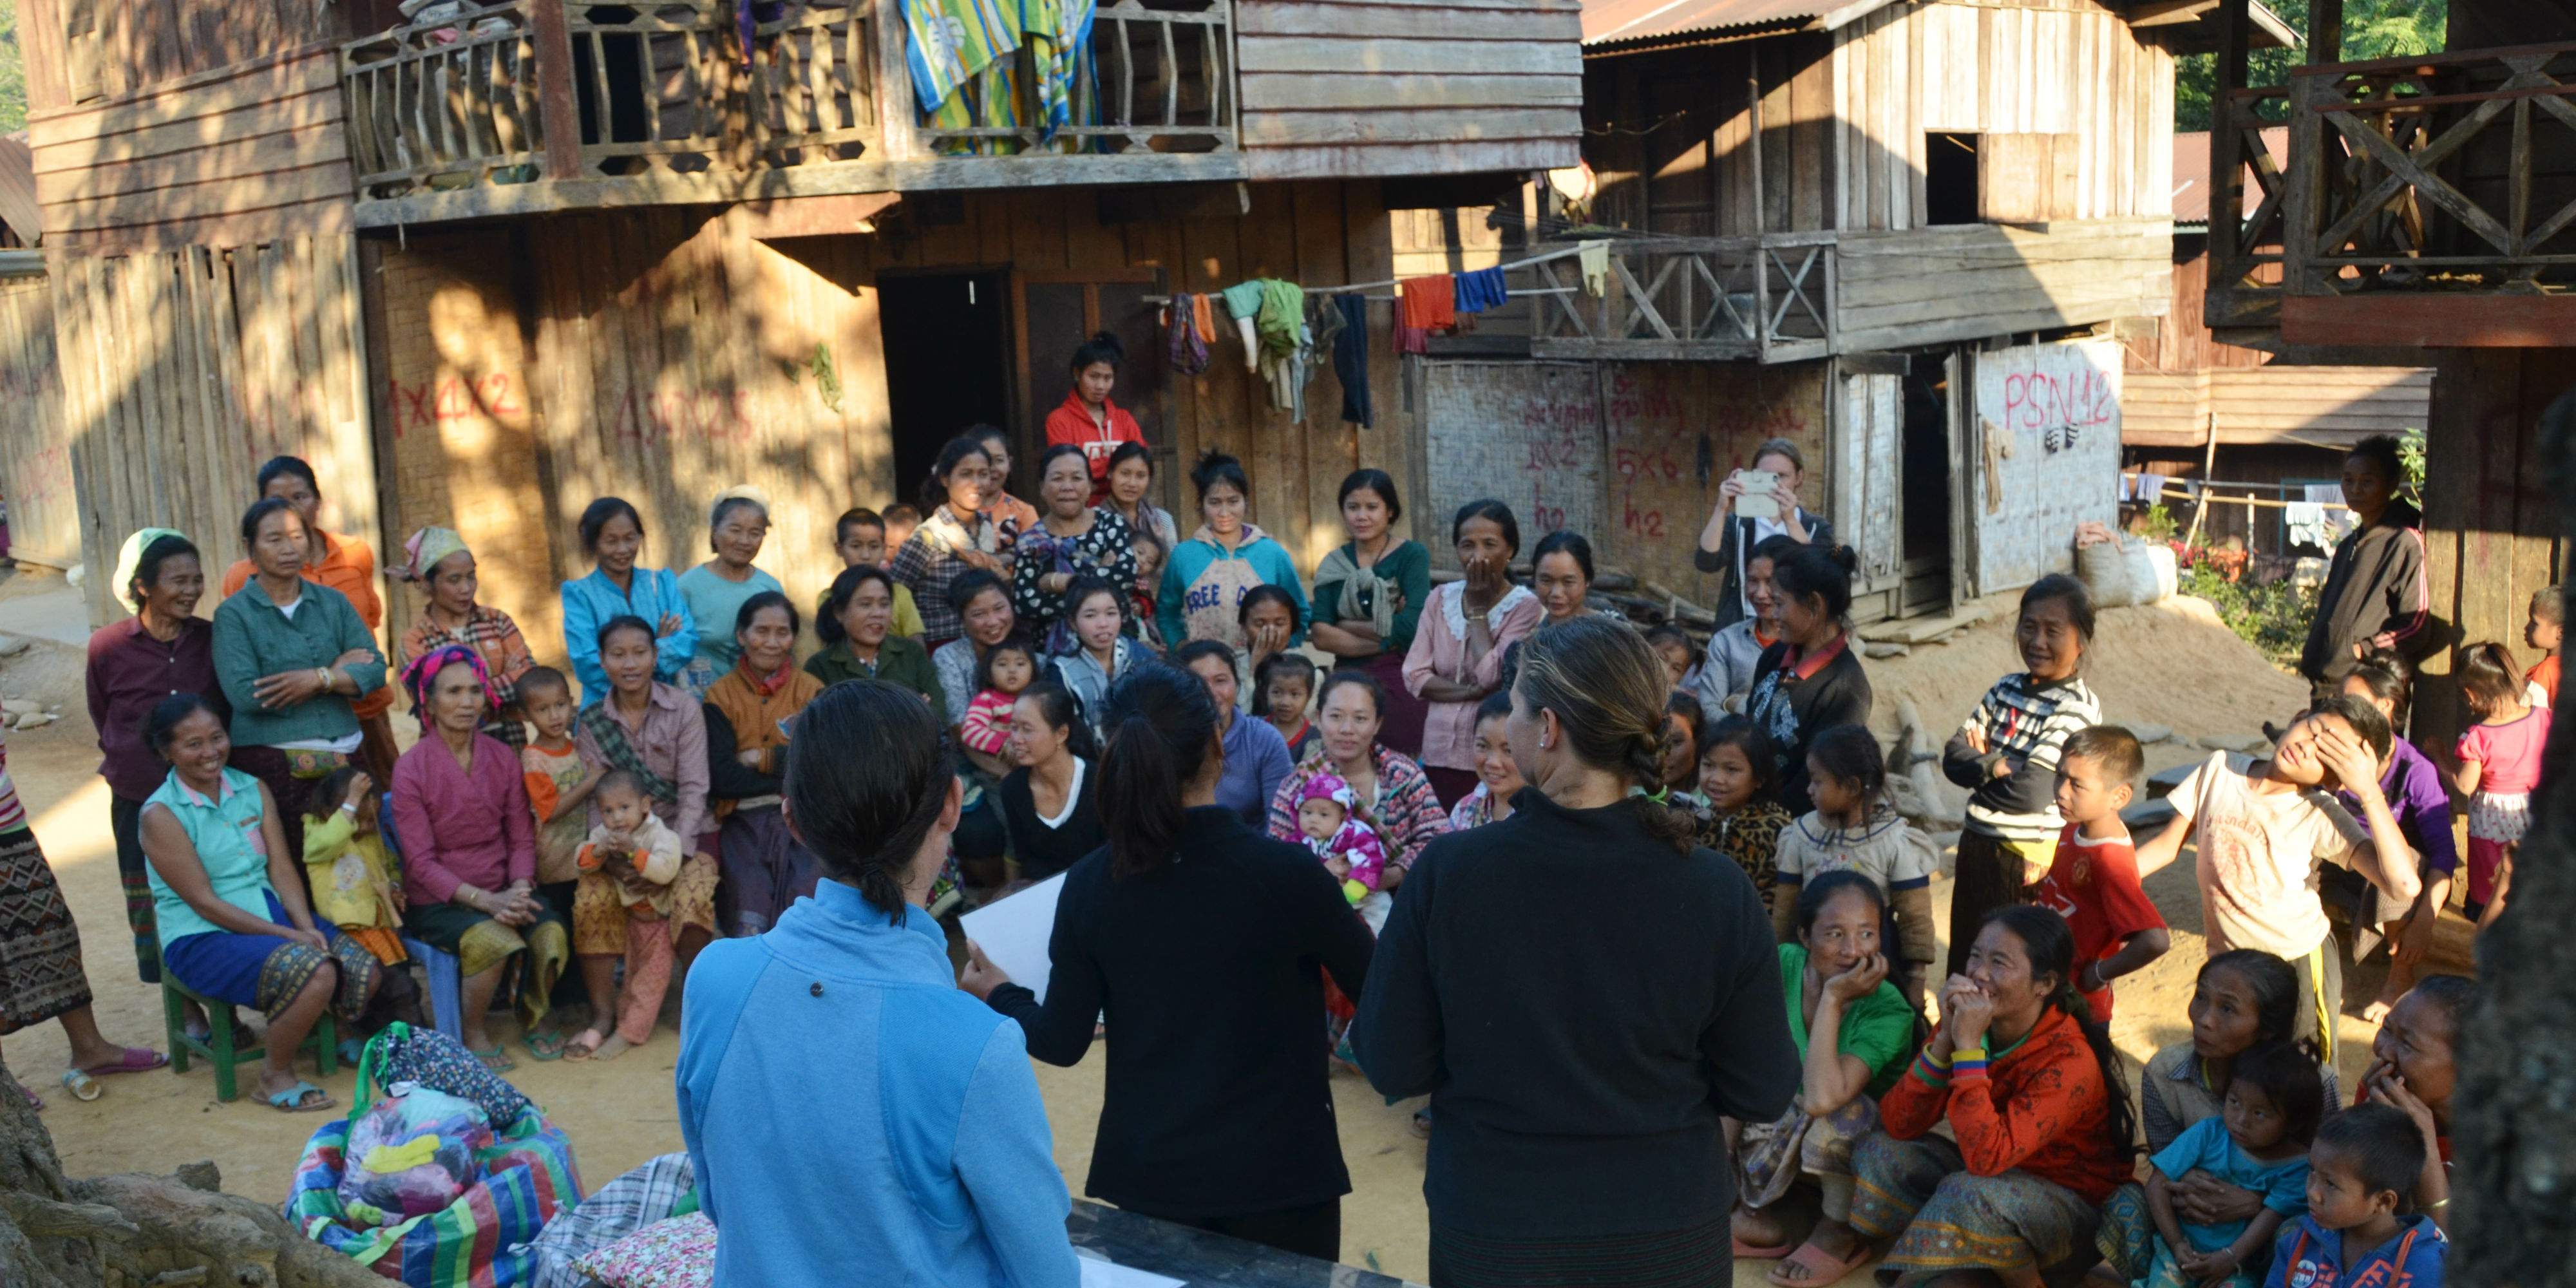 GVI participants help Laos women learn about menstration through a women's empowerment project.